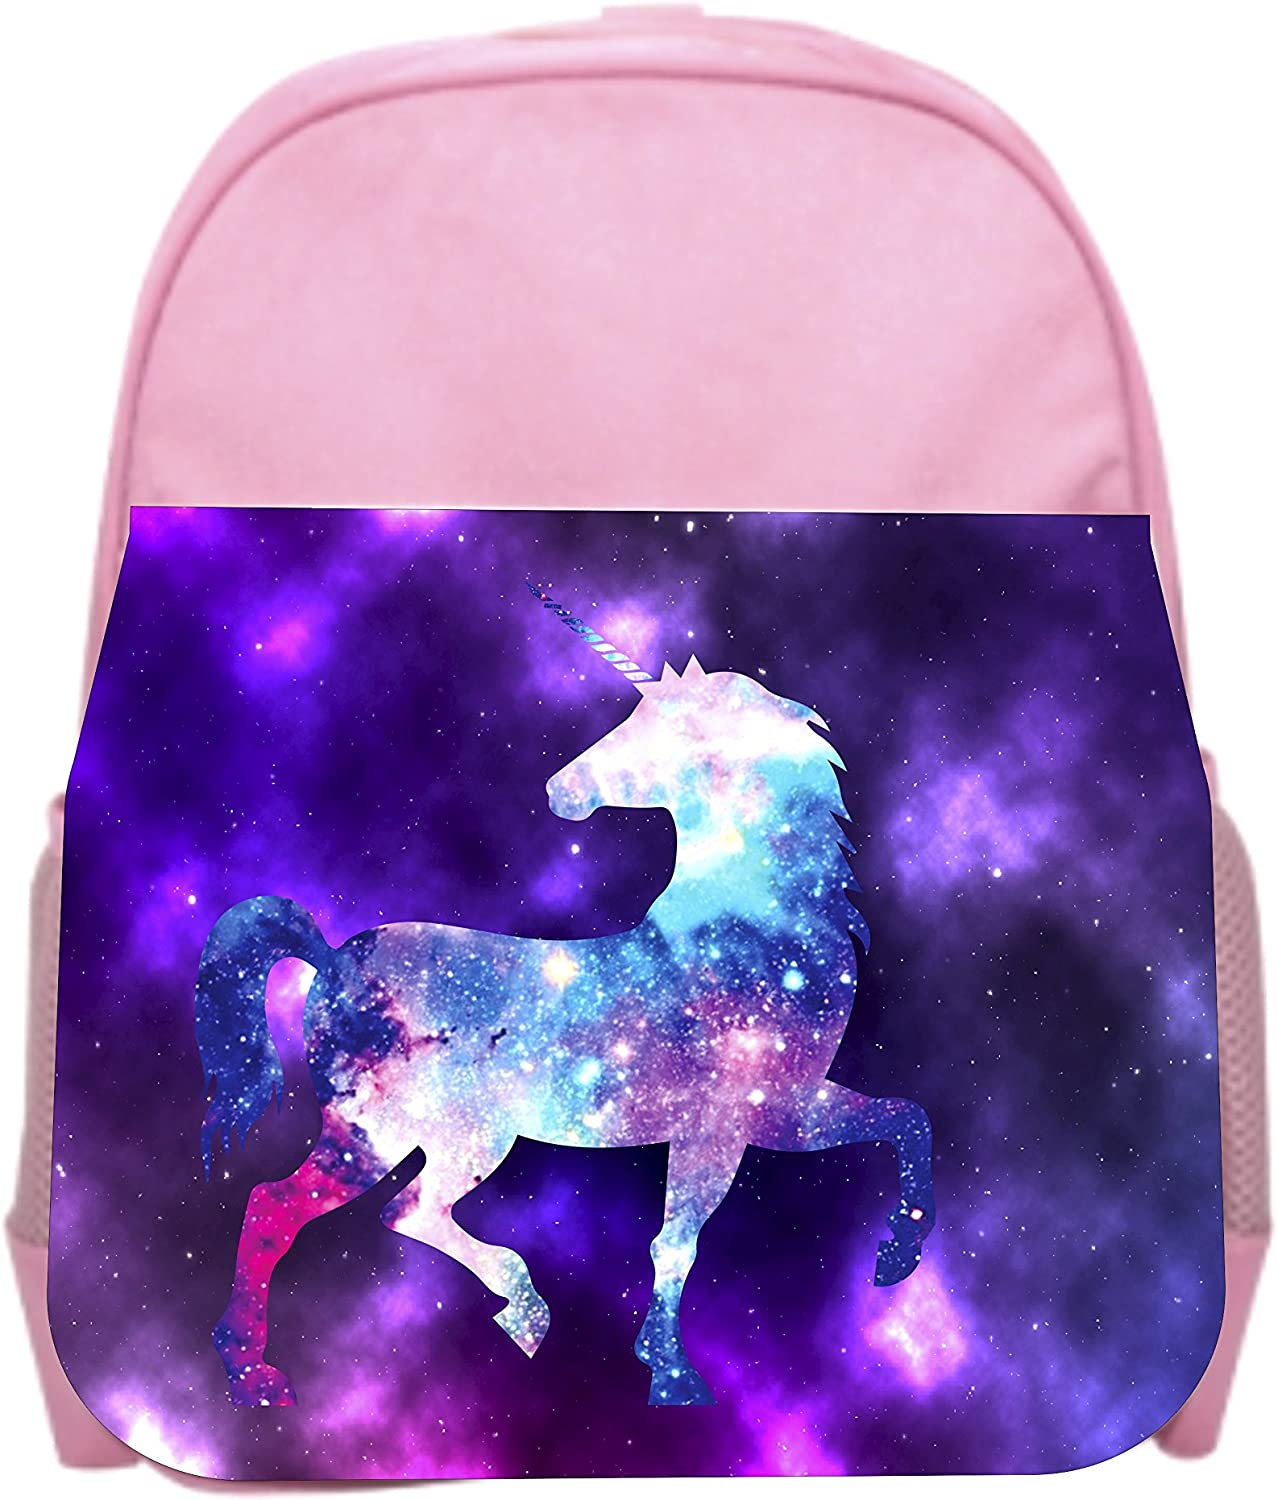 Galactic Unicorn Pink Girls Preschool Toddler Backpack /& Lunch Box Set